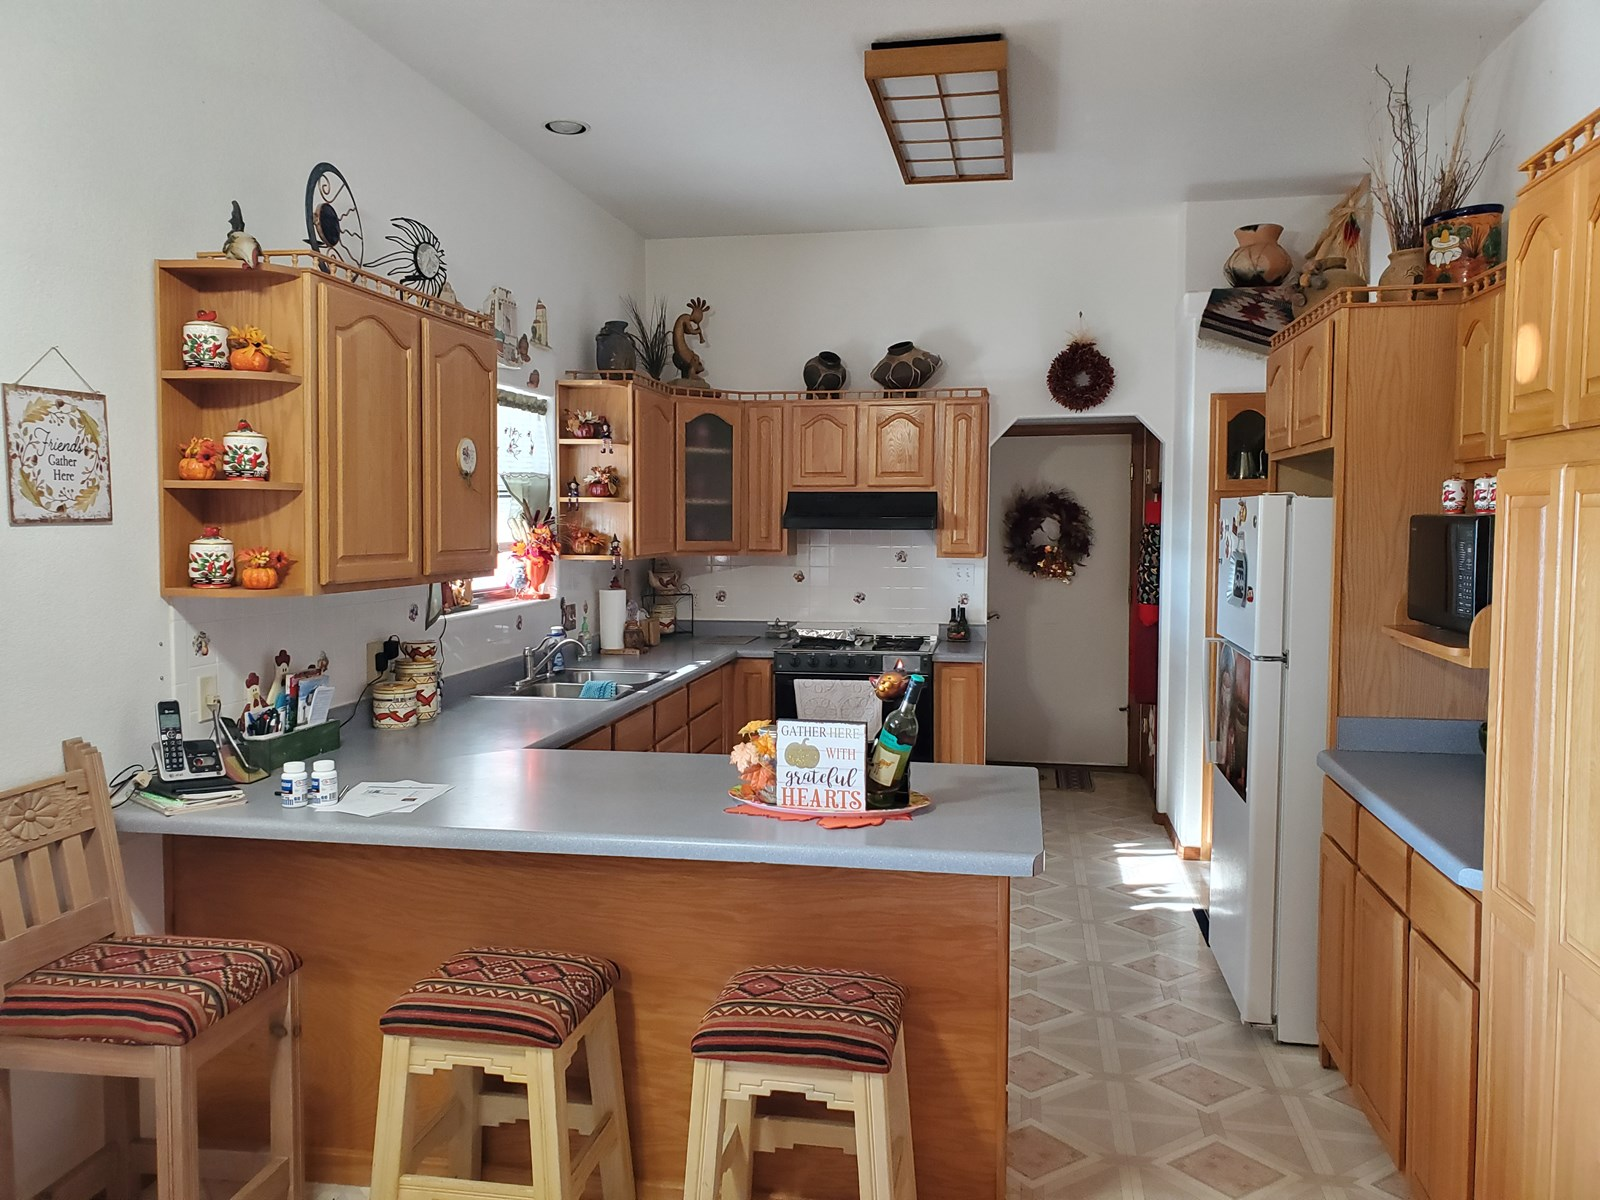 Home for sale in Columbus, NM